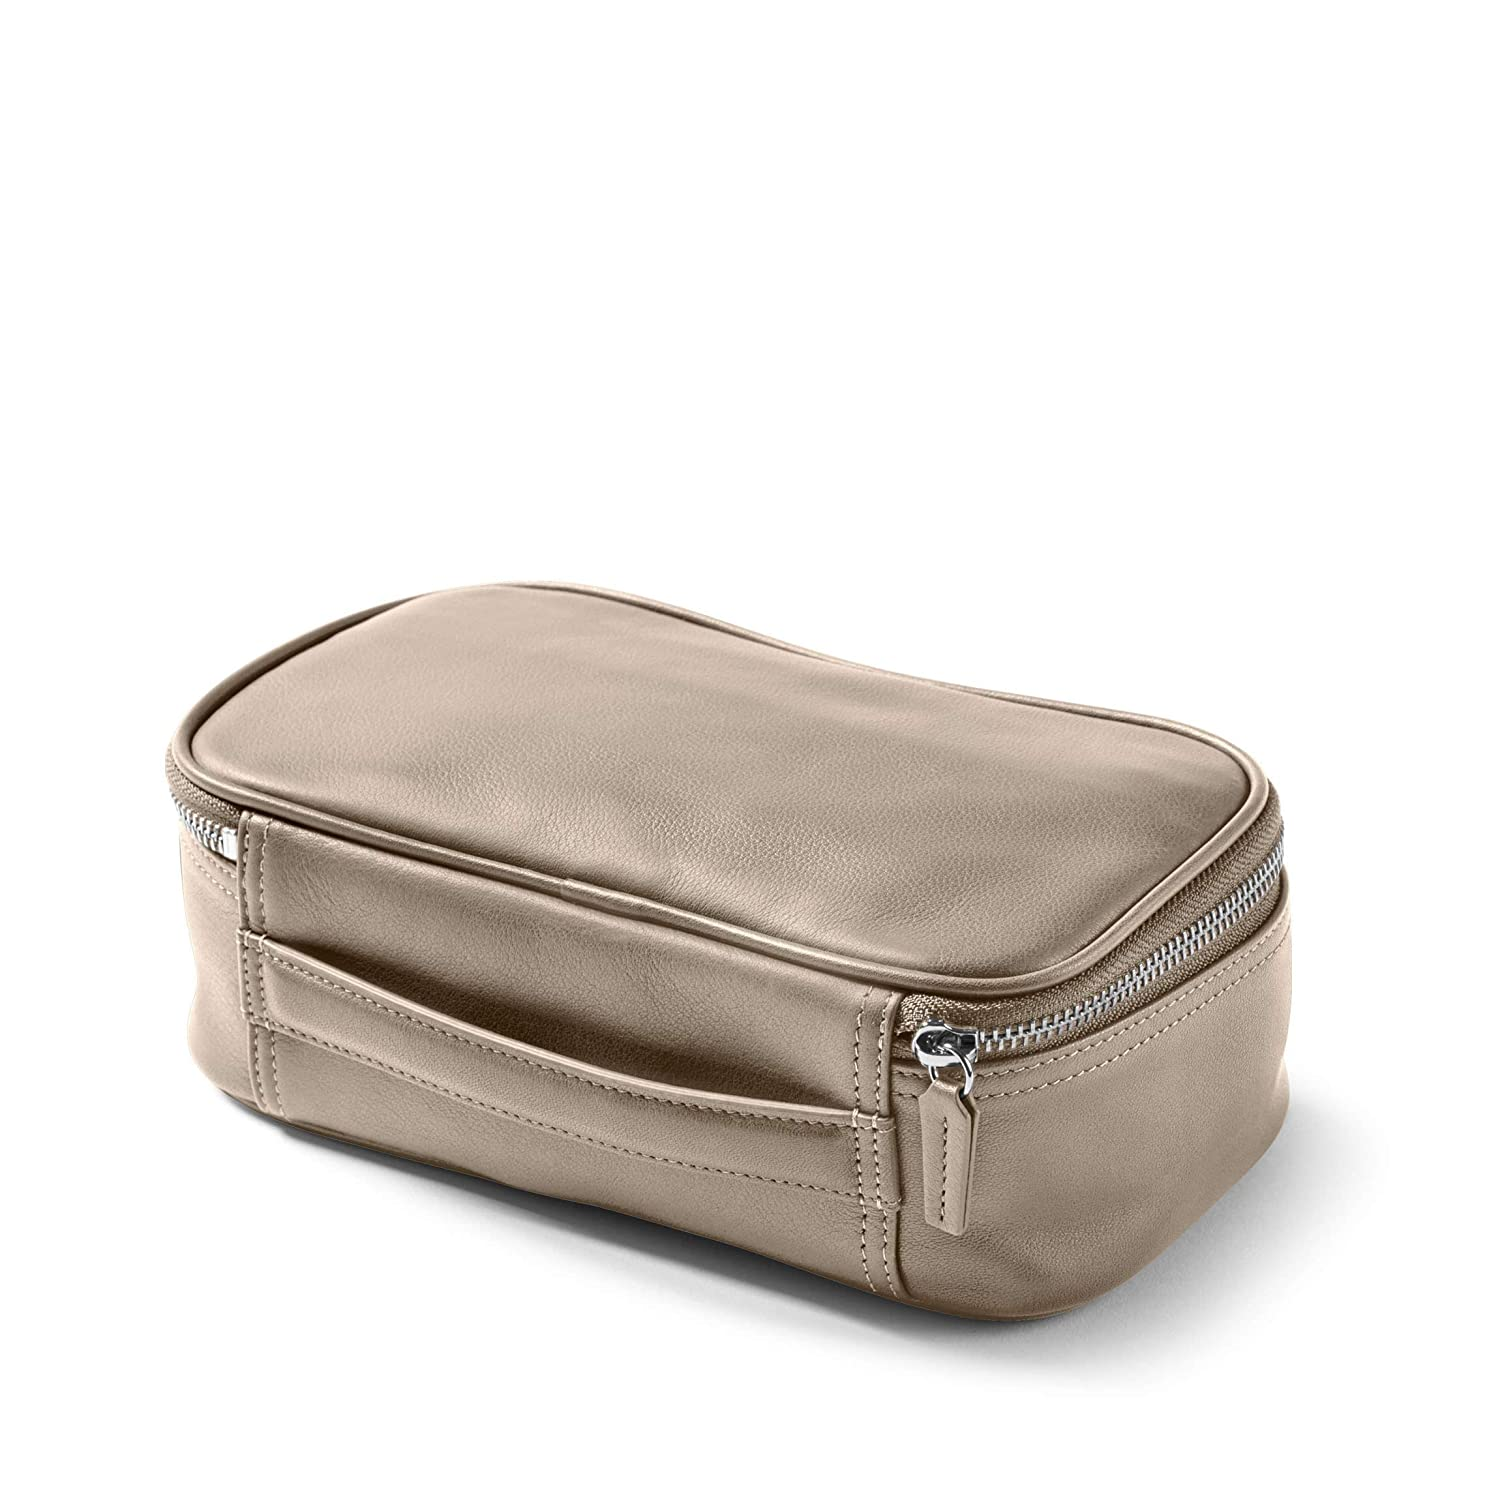 Leatherology Medium Travel Organizer